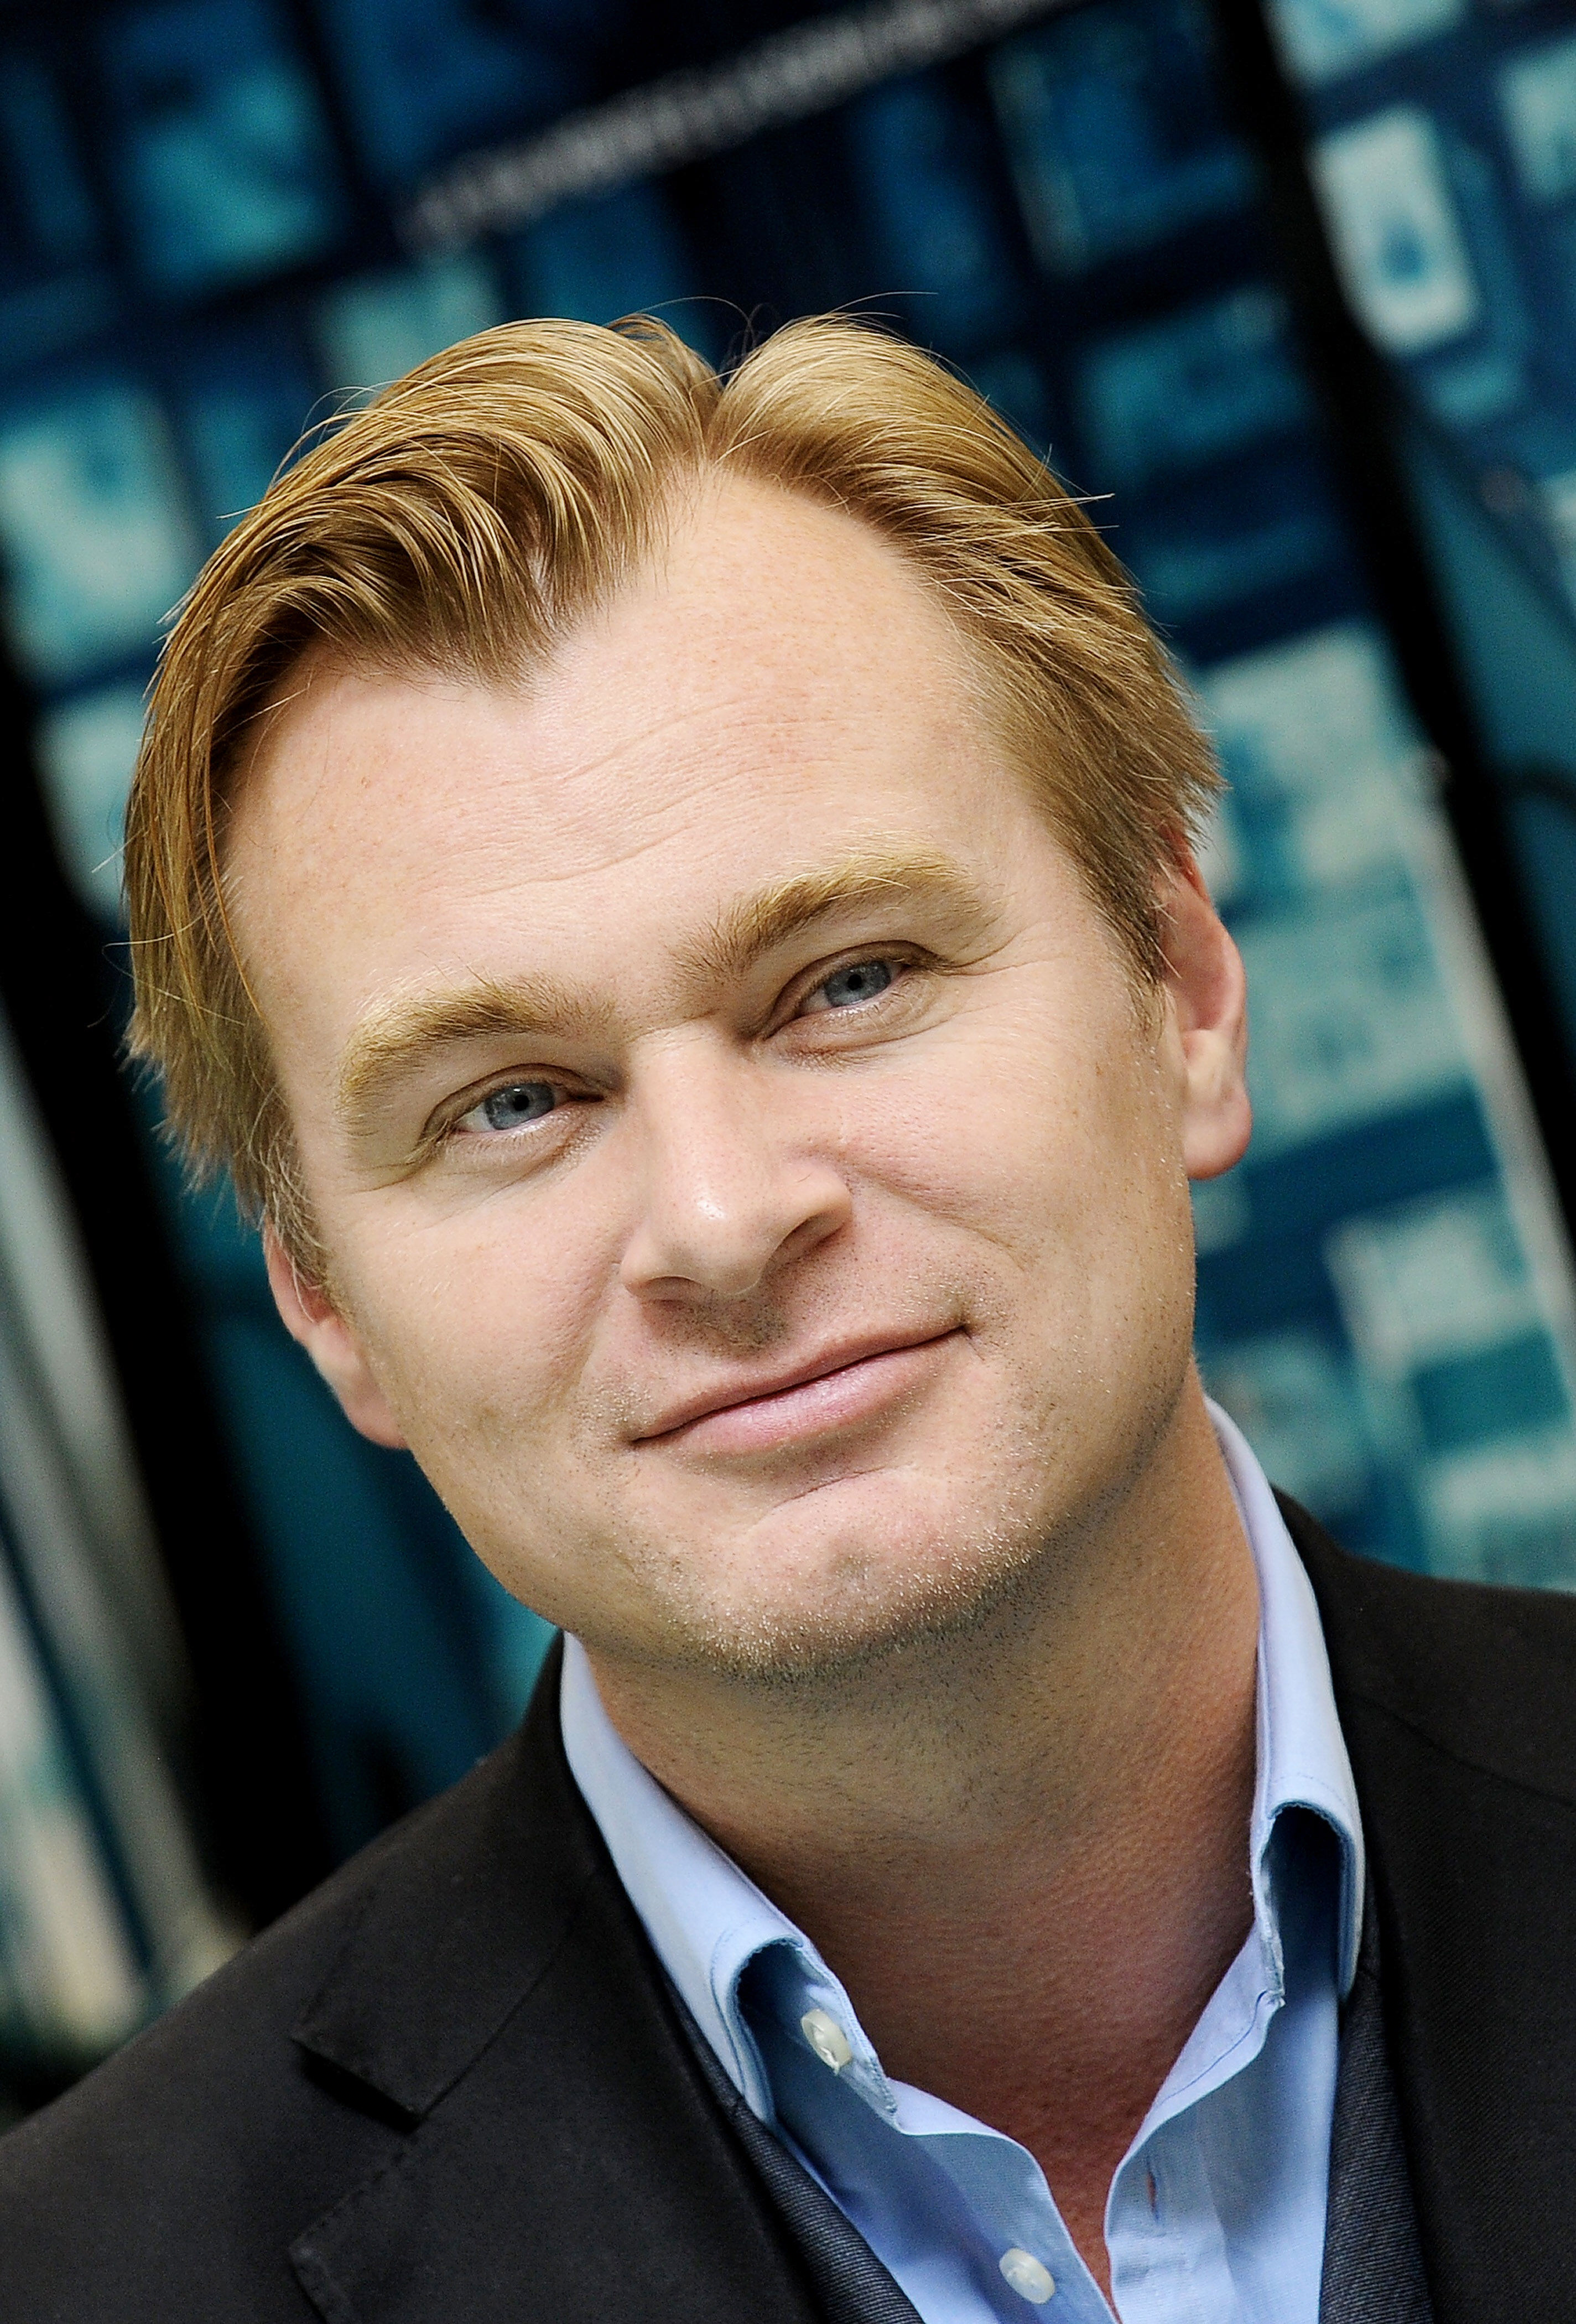 christopher nolan фильмы